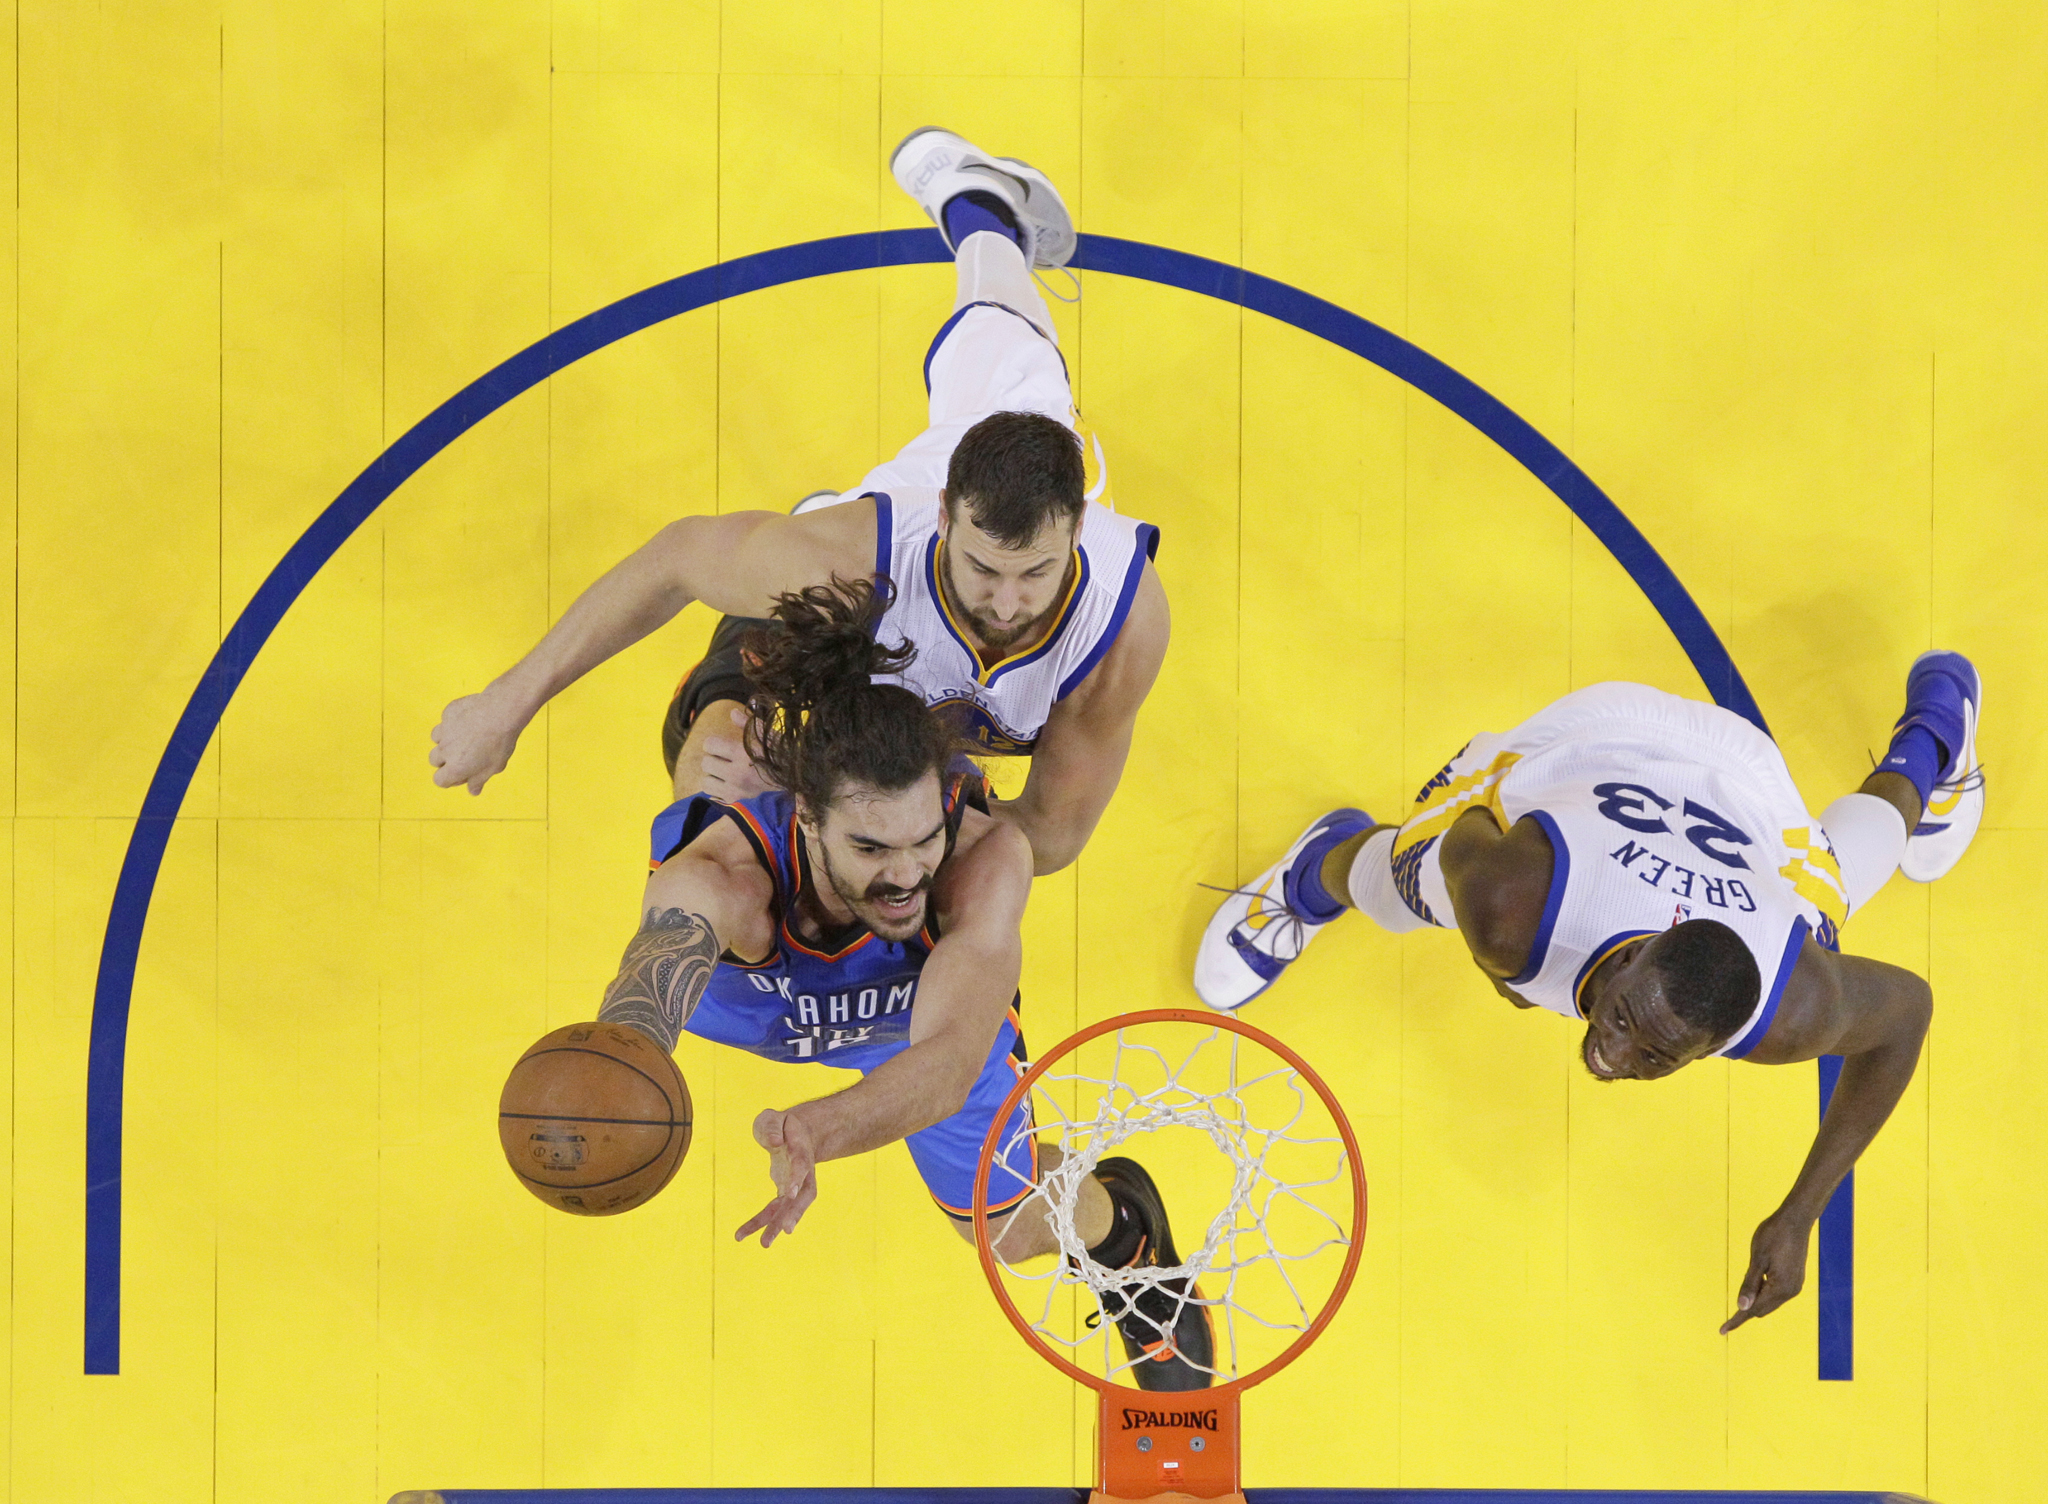 Oklahoma City Thunder's Steven Adams, bottom left, drives past Golden State Warriors' Andrew Bogut, top left, and Draymond Green (23) during the first half in Game 1 of the NBA basketball Western Conference finals Monday, May 16, 2016, in Oakland, Calif. Oklahoma City won 108-102